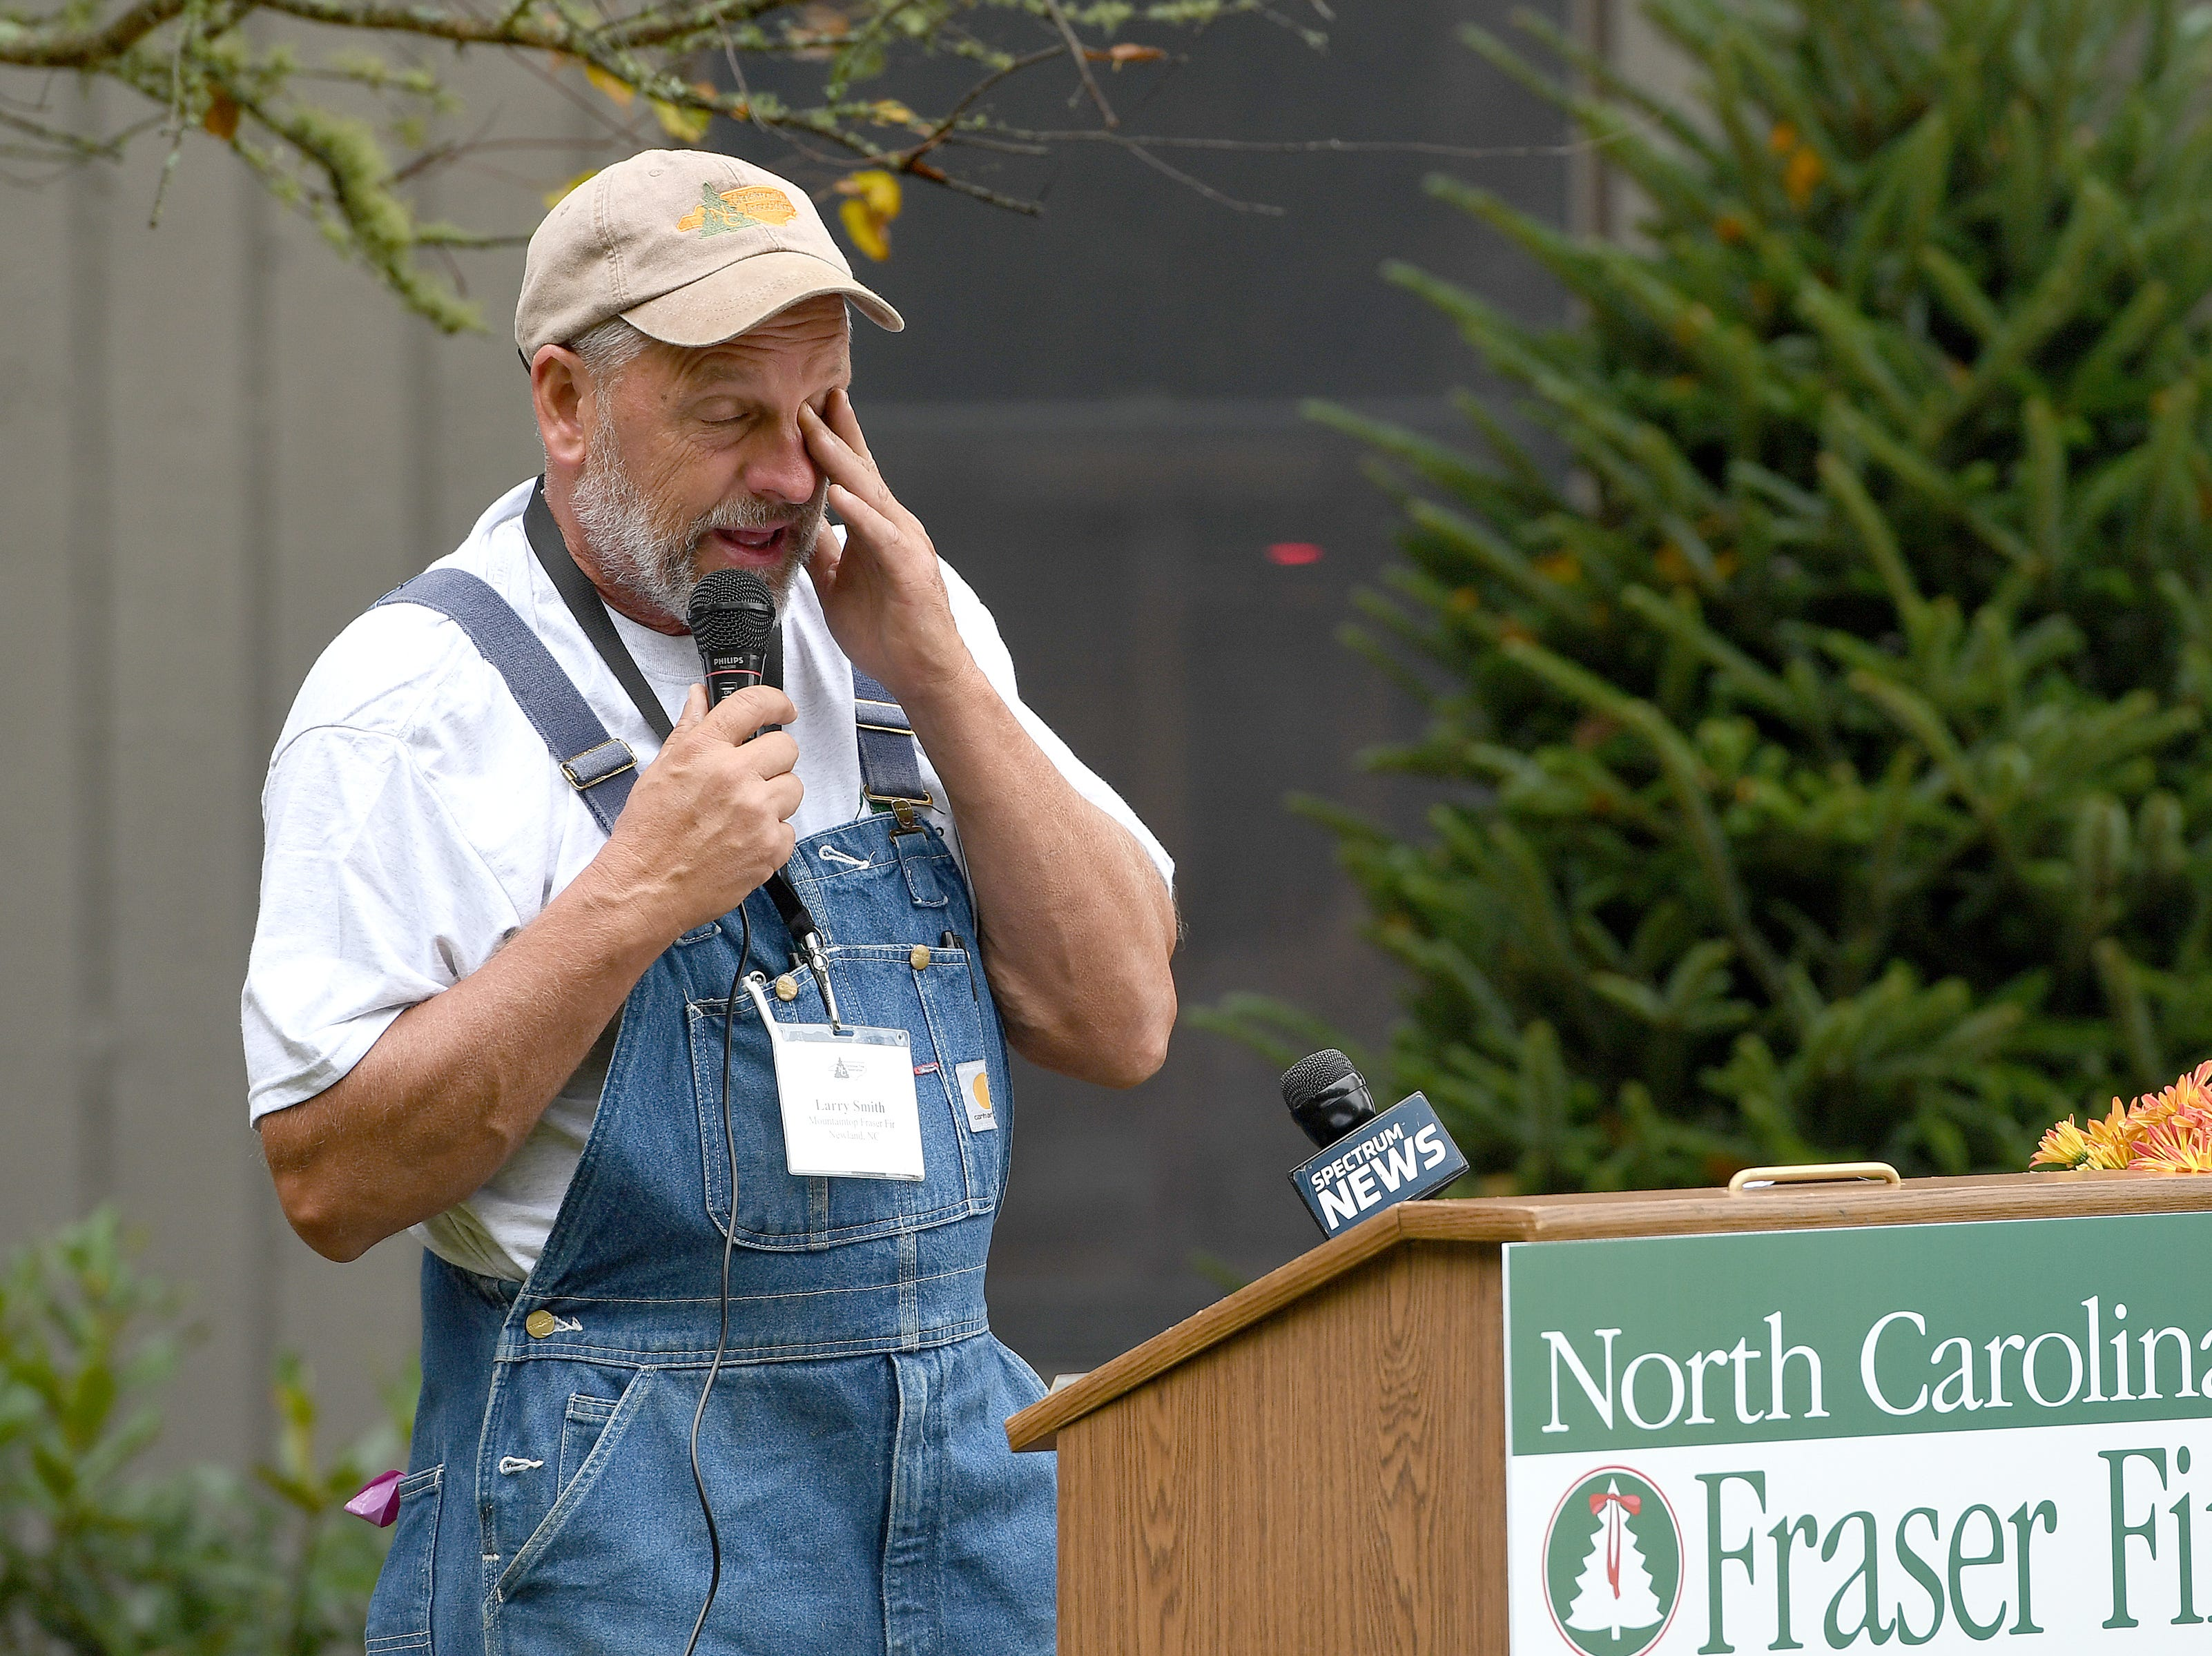 Avery County Christmas tree grower Larry Smith becomes emotional as he addresses the crowd during an event at his farm in Newland on Sept. 24, 2018. Smith was named the Grand Champion in the National Christmas Tree Association's Christmas tree contest and with the title comes the honor of providing a tree to the White House to be displayed in the Blue Room during the Christmas season.